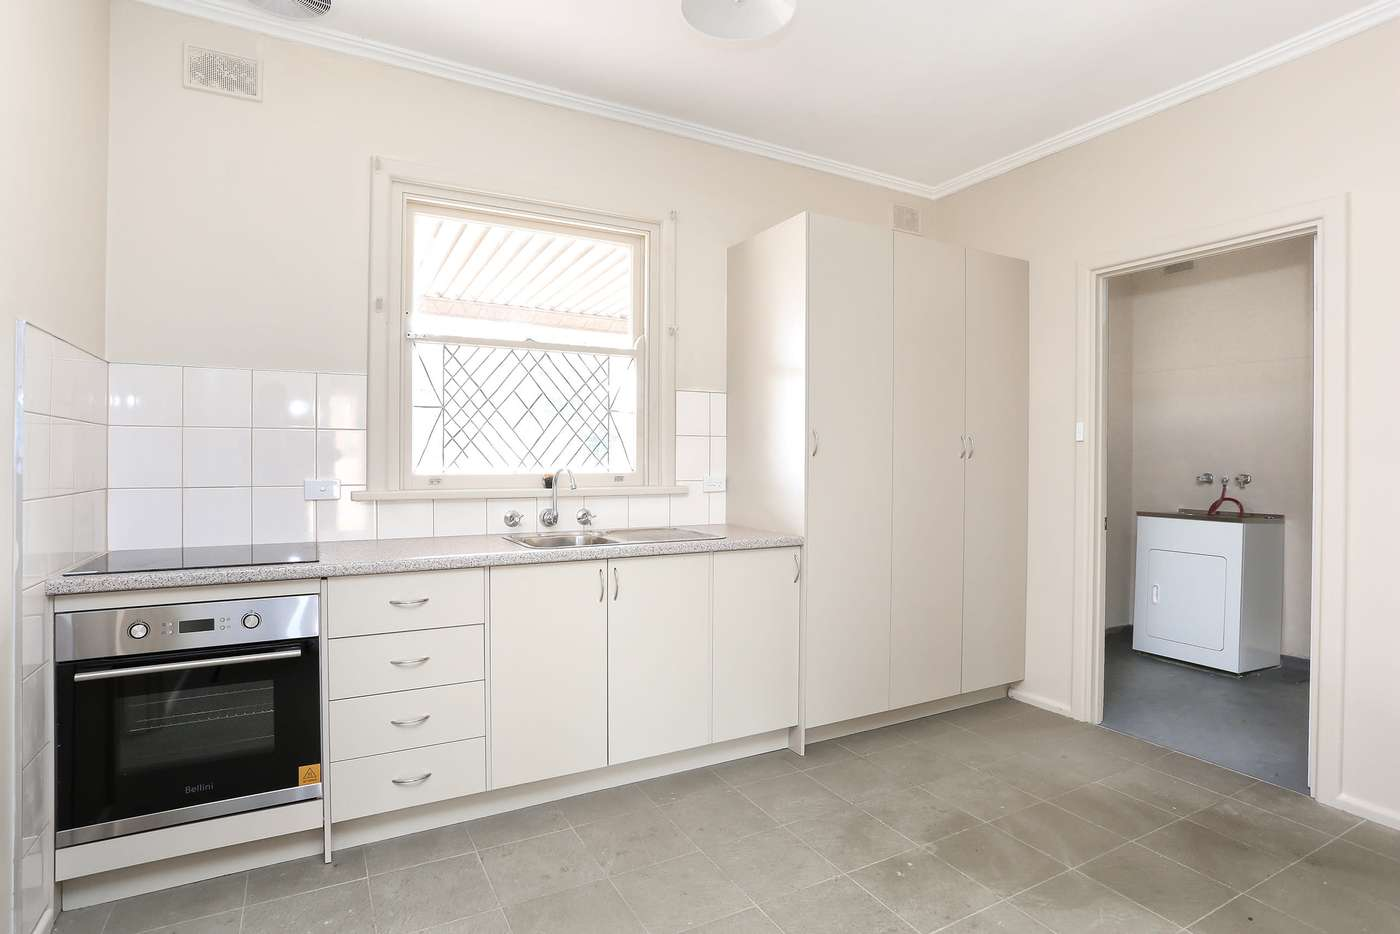 Main view of Homely house listing, 33 Bedchester Road, Elizabeth North, SA 5113